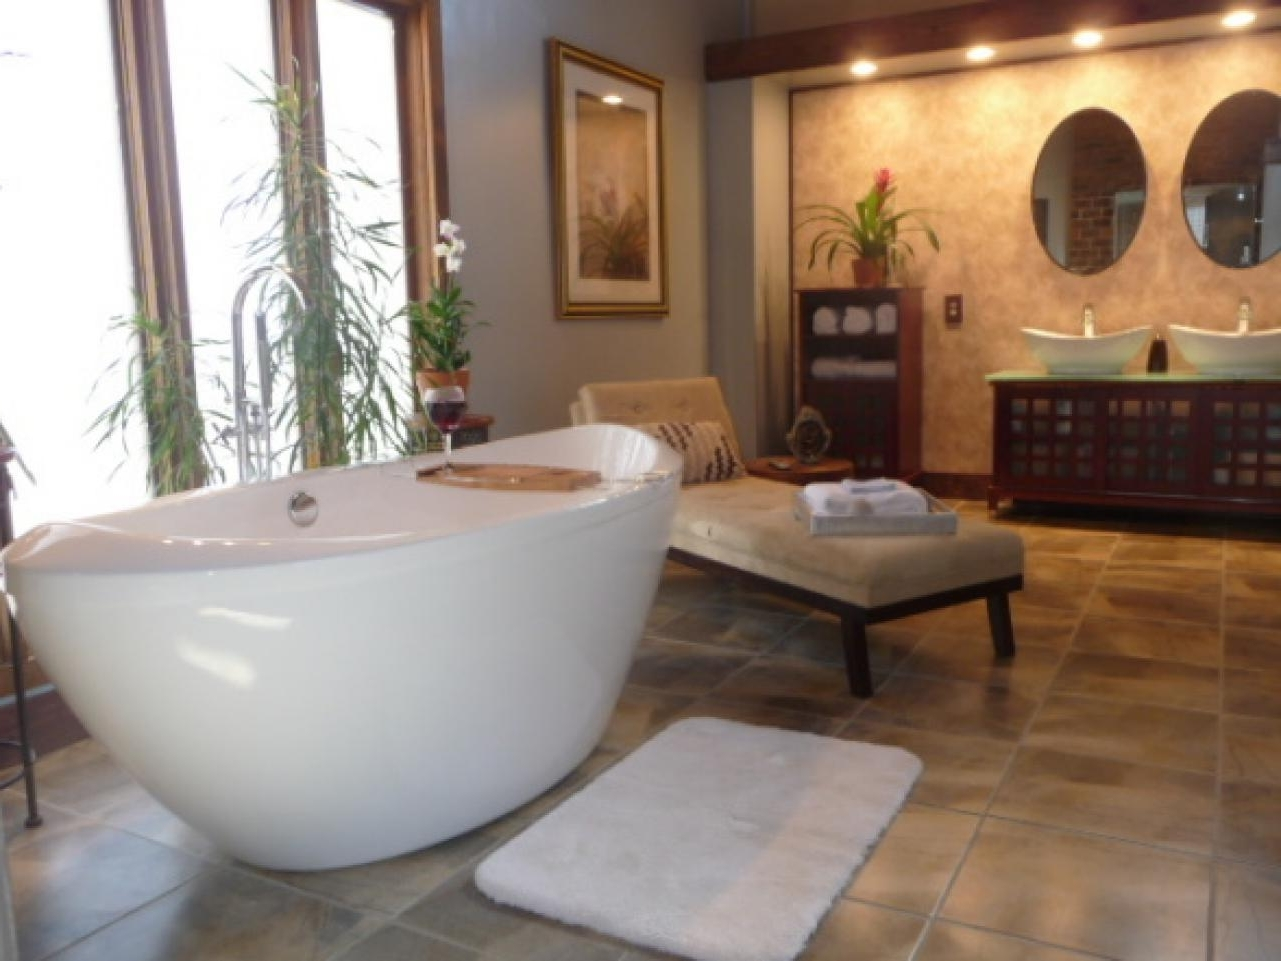 Budgeting For A Bathroom Remodel | Hgtv Inside Bathroom Remodel (View 20 of 33)